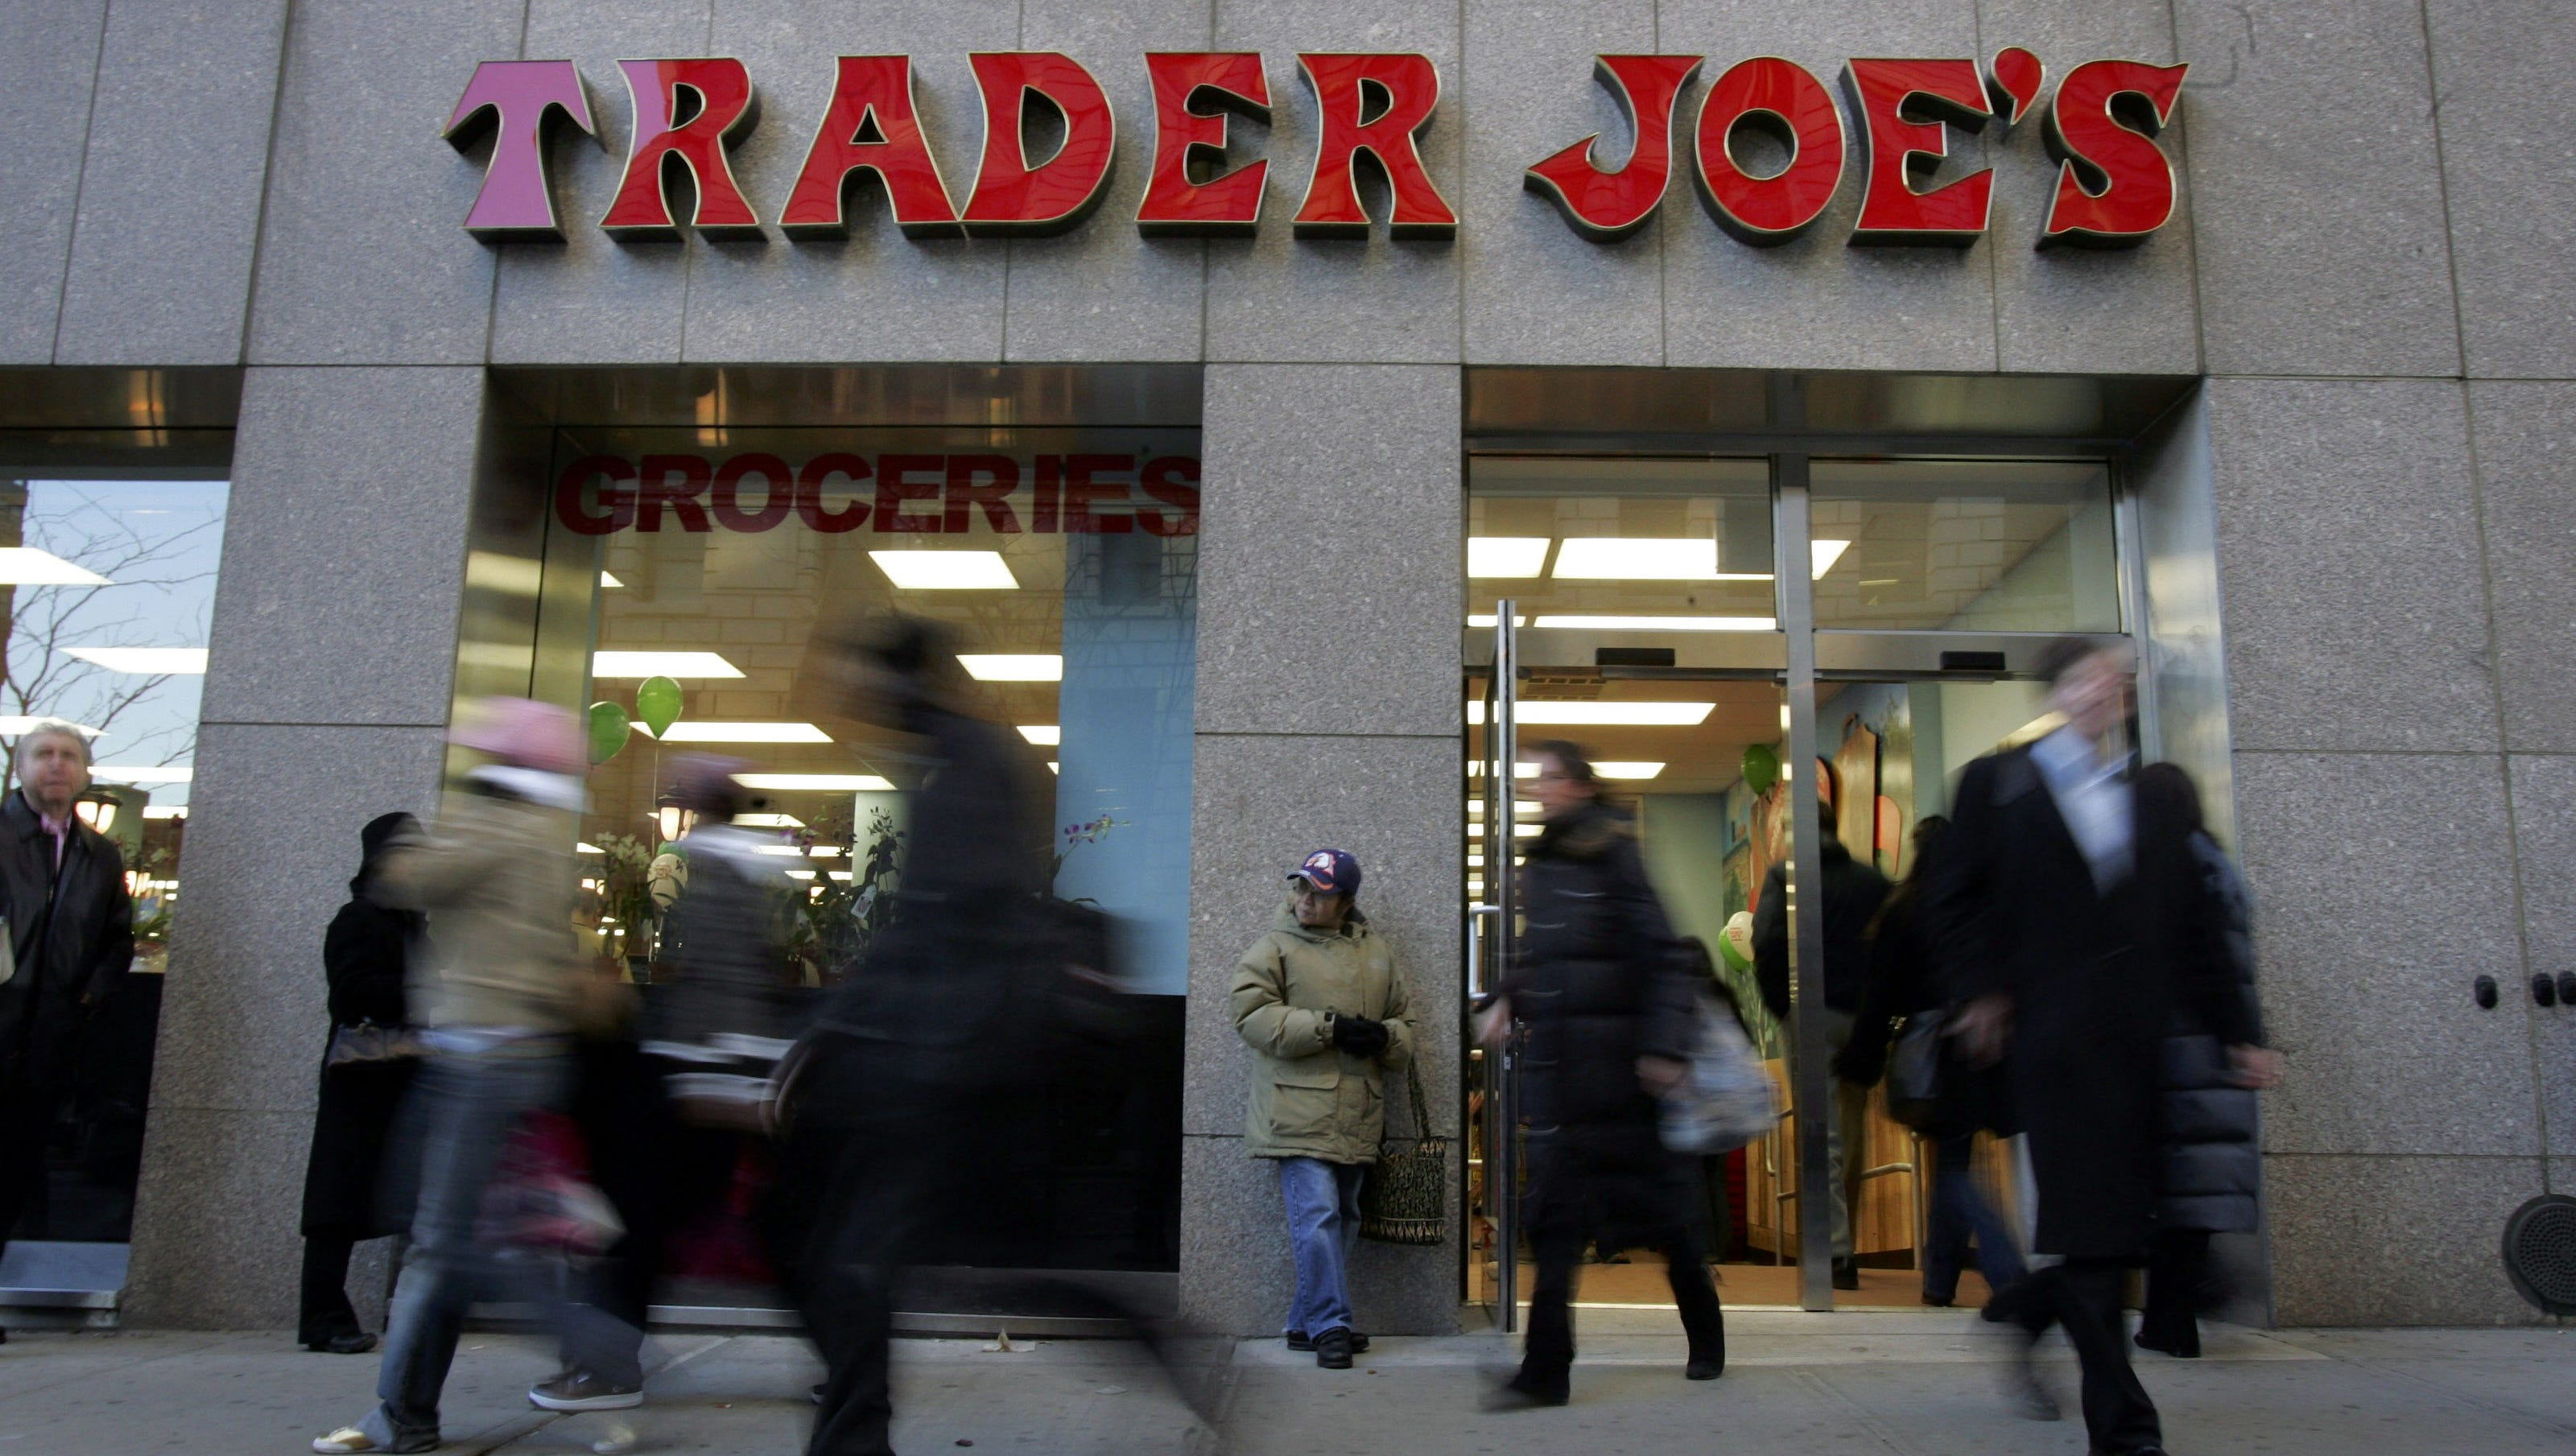 Trader Joe's petition: Grocer asked to remove 'racist packaging' of brands including Trader José's Trader Ming's – USA TODAY